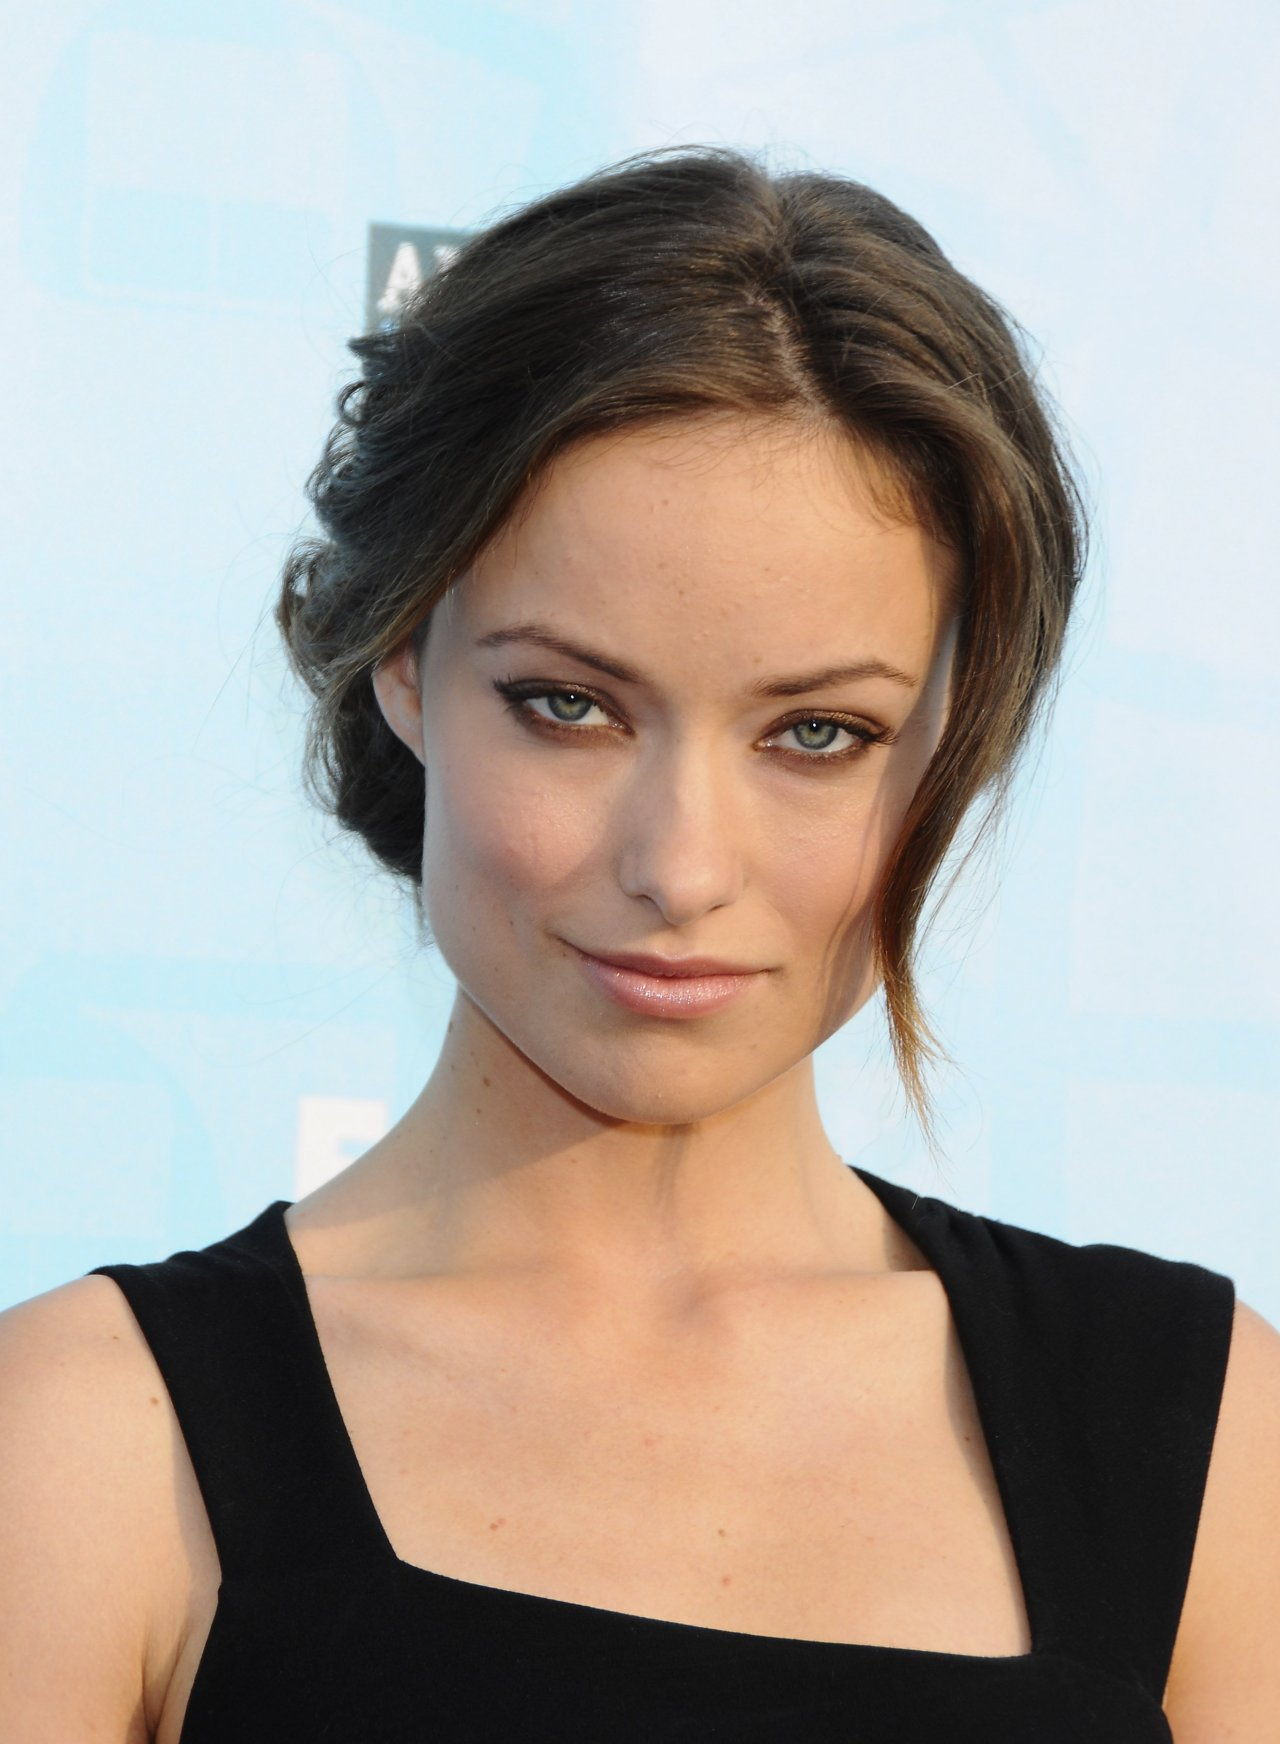 http://media.celebrity-pictures.ca/Celebrities/Olivia-Wilde/Olivia-Wilde-1125660.jpg